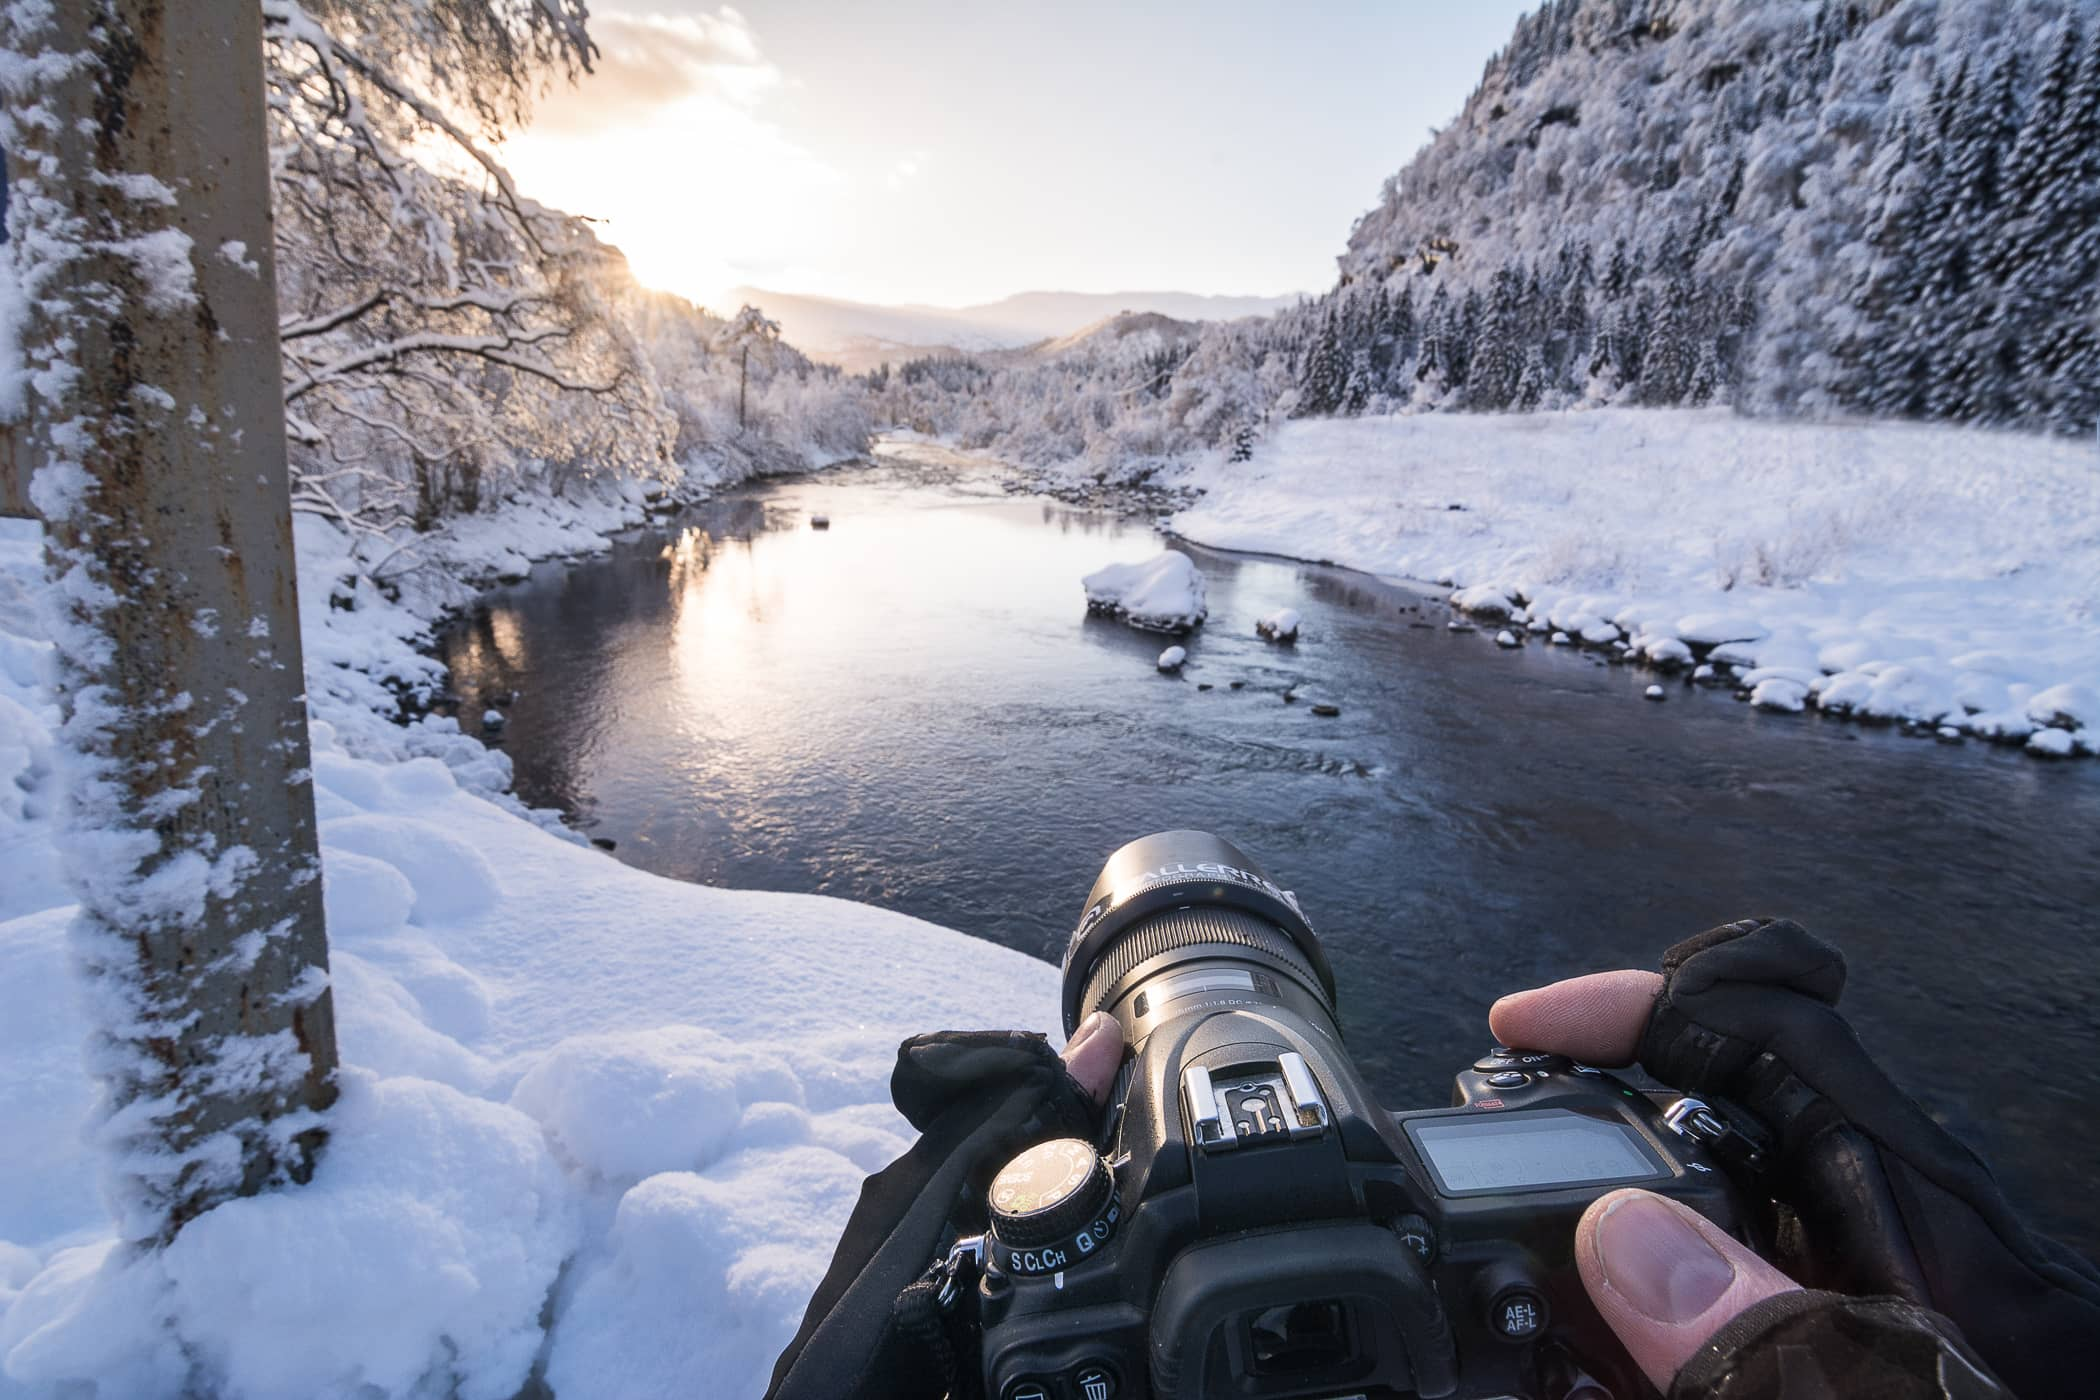 photographing a river in winter